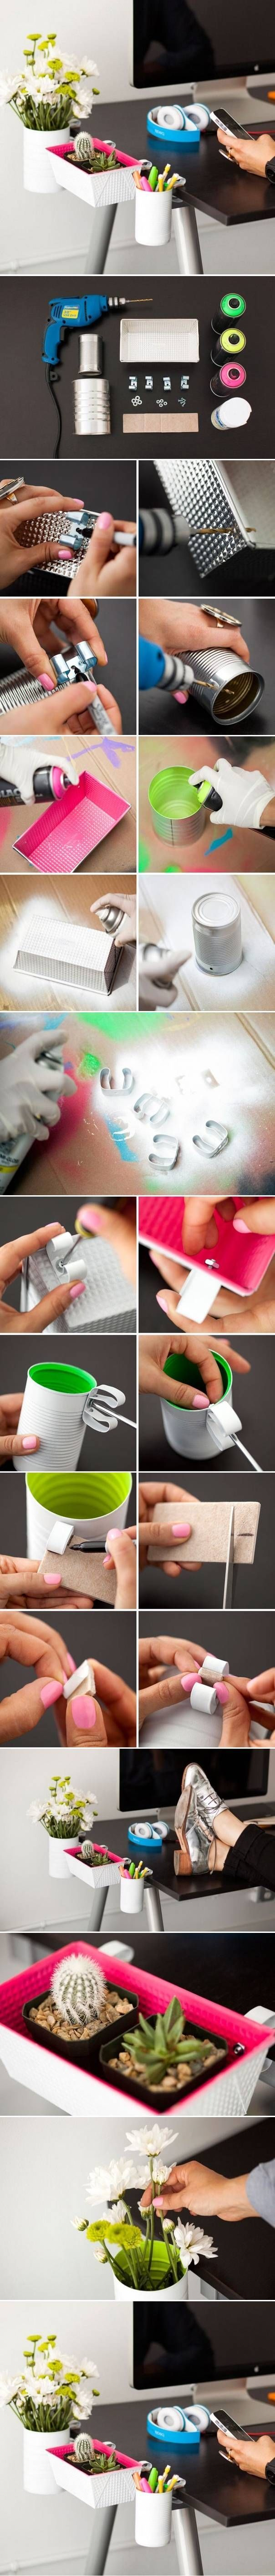 DIY: Desk organisers out of recycled cans and containers